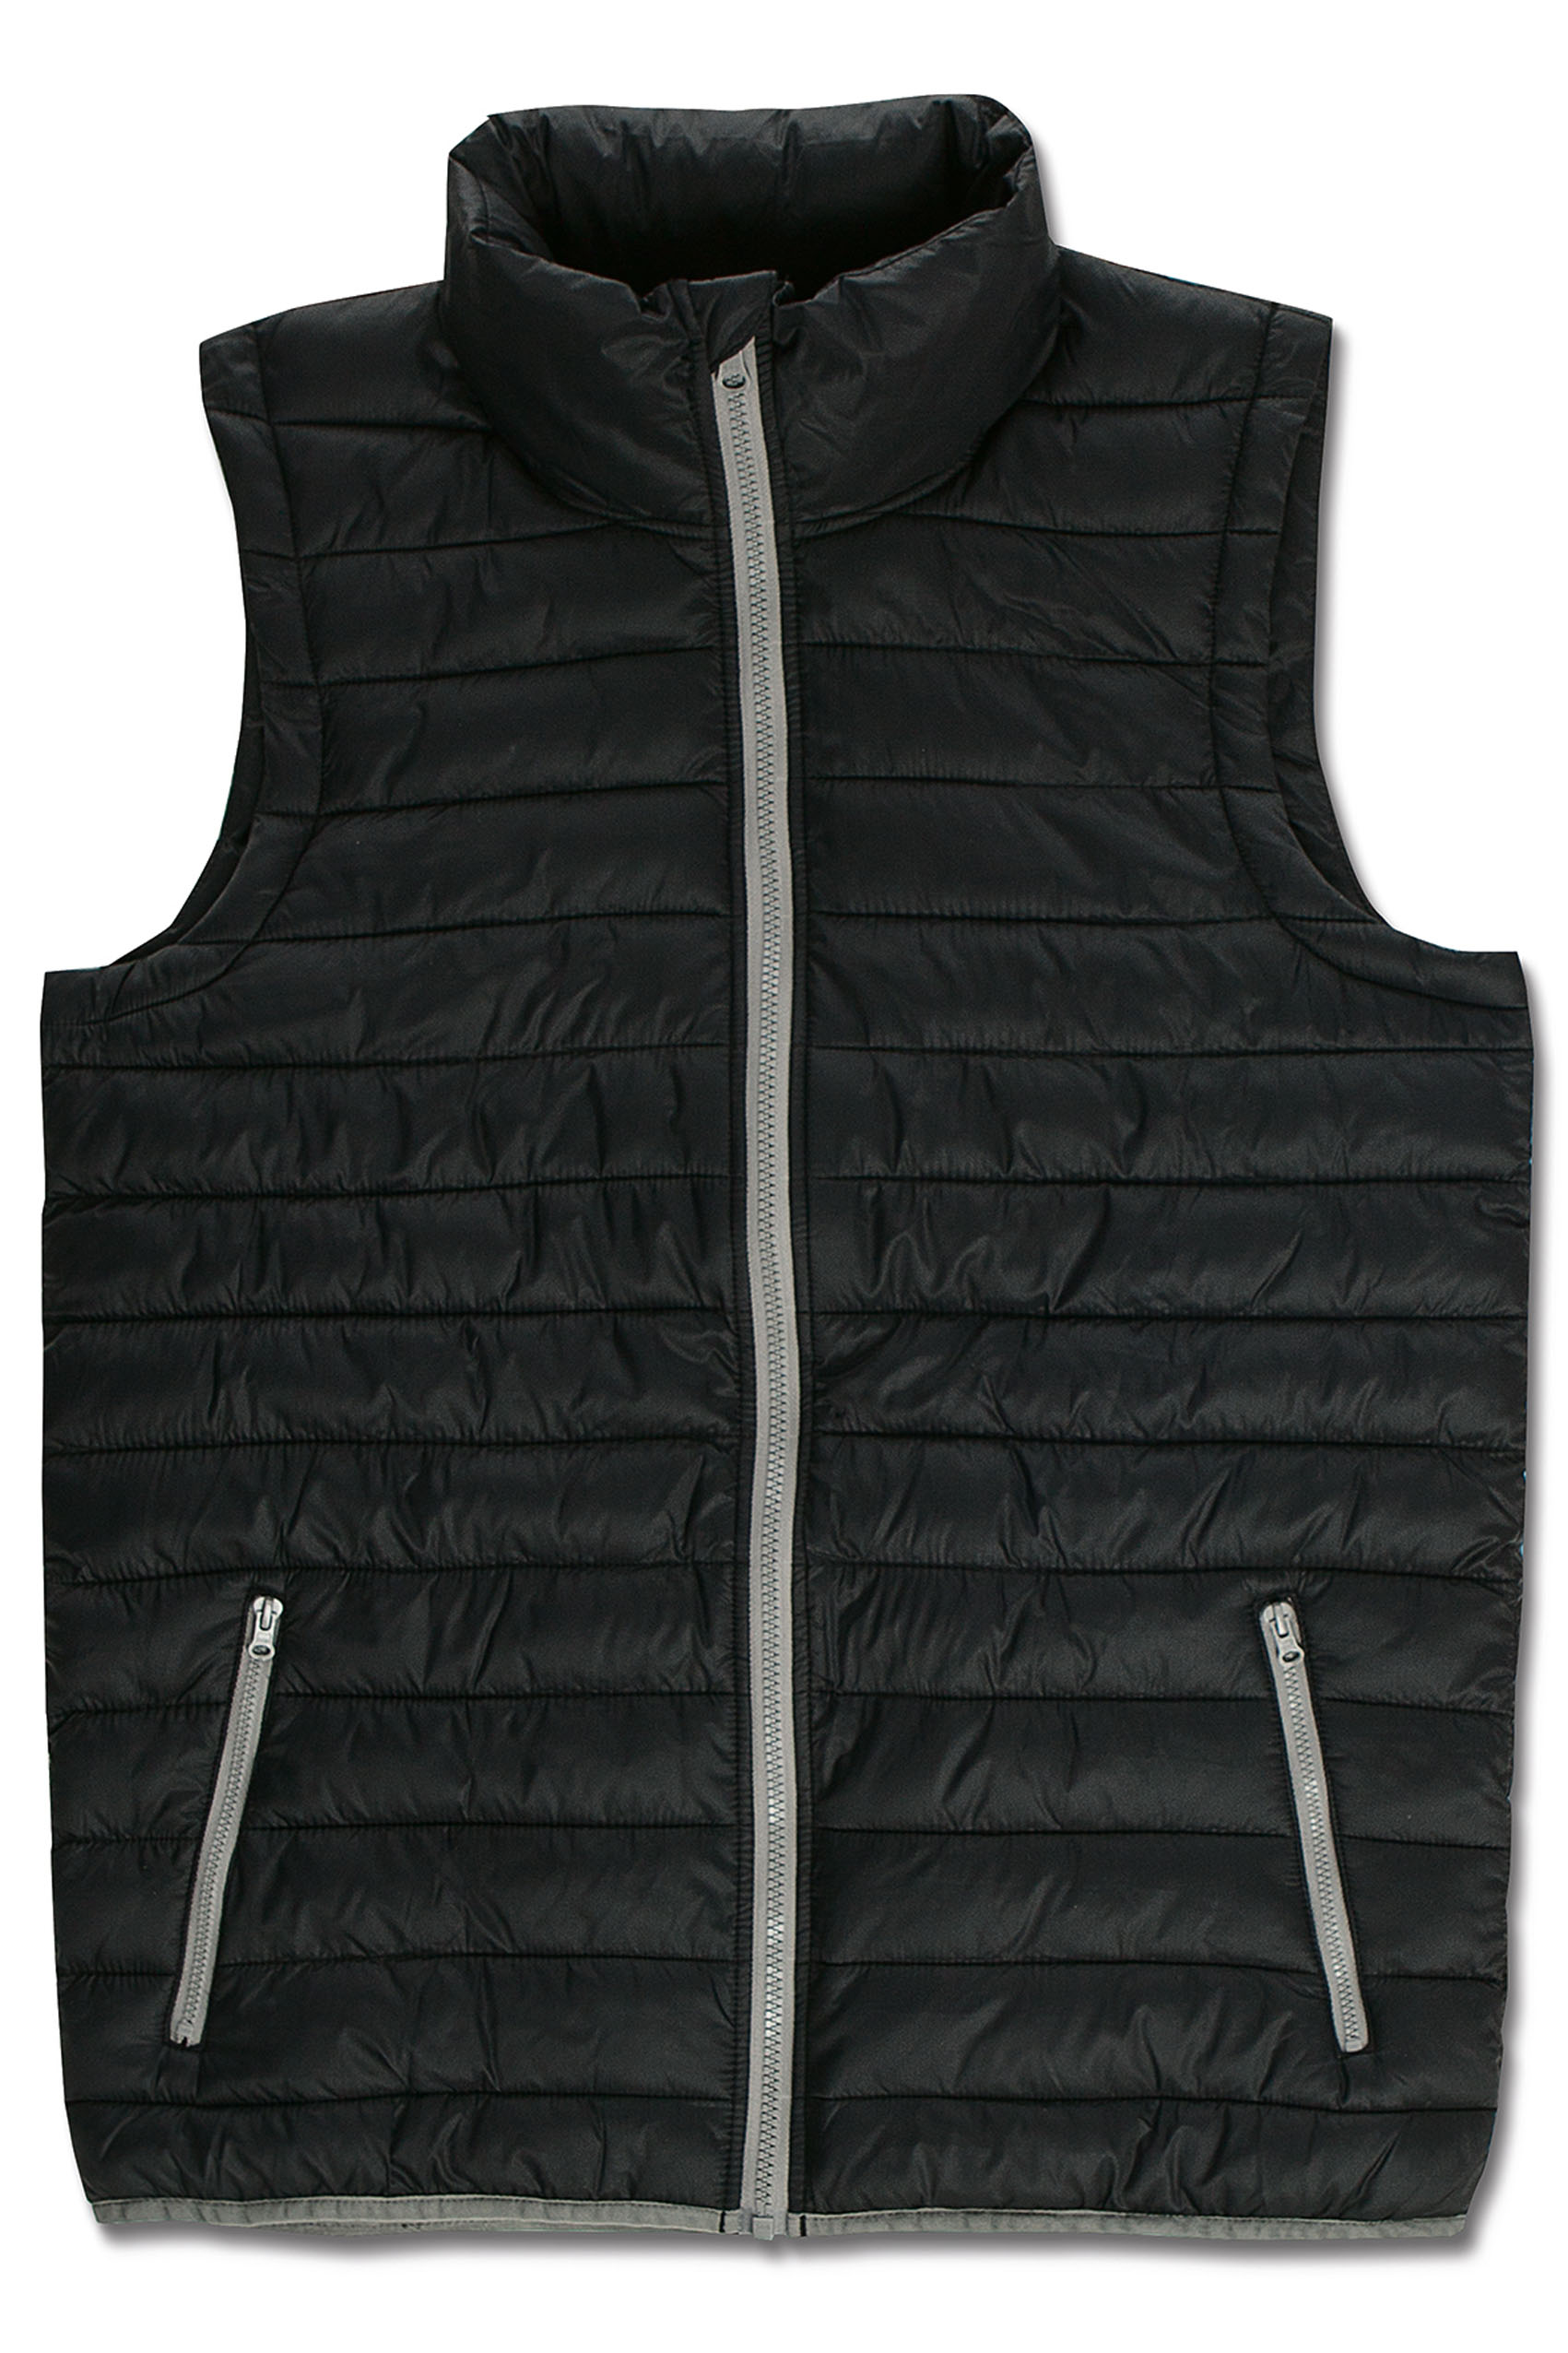 Stedman Padded Vest Active for him